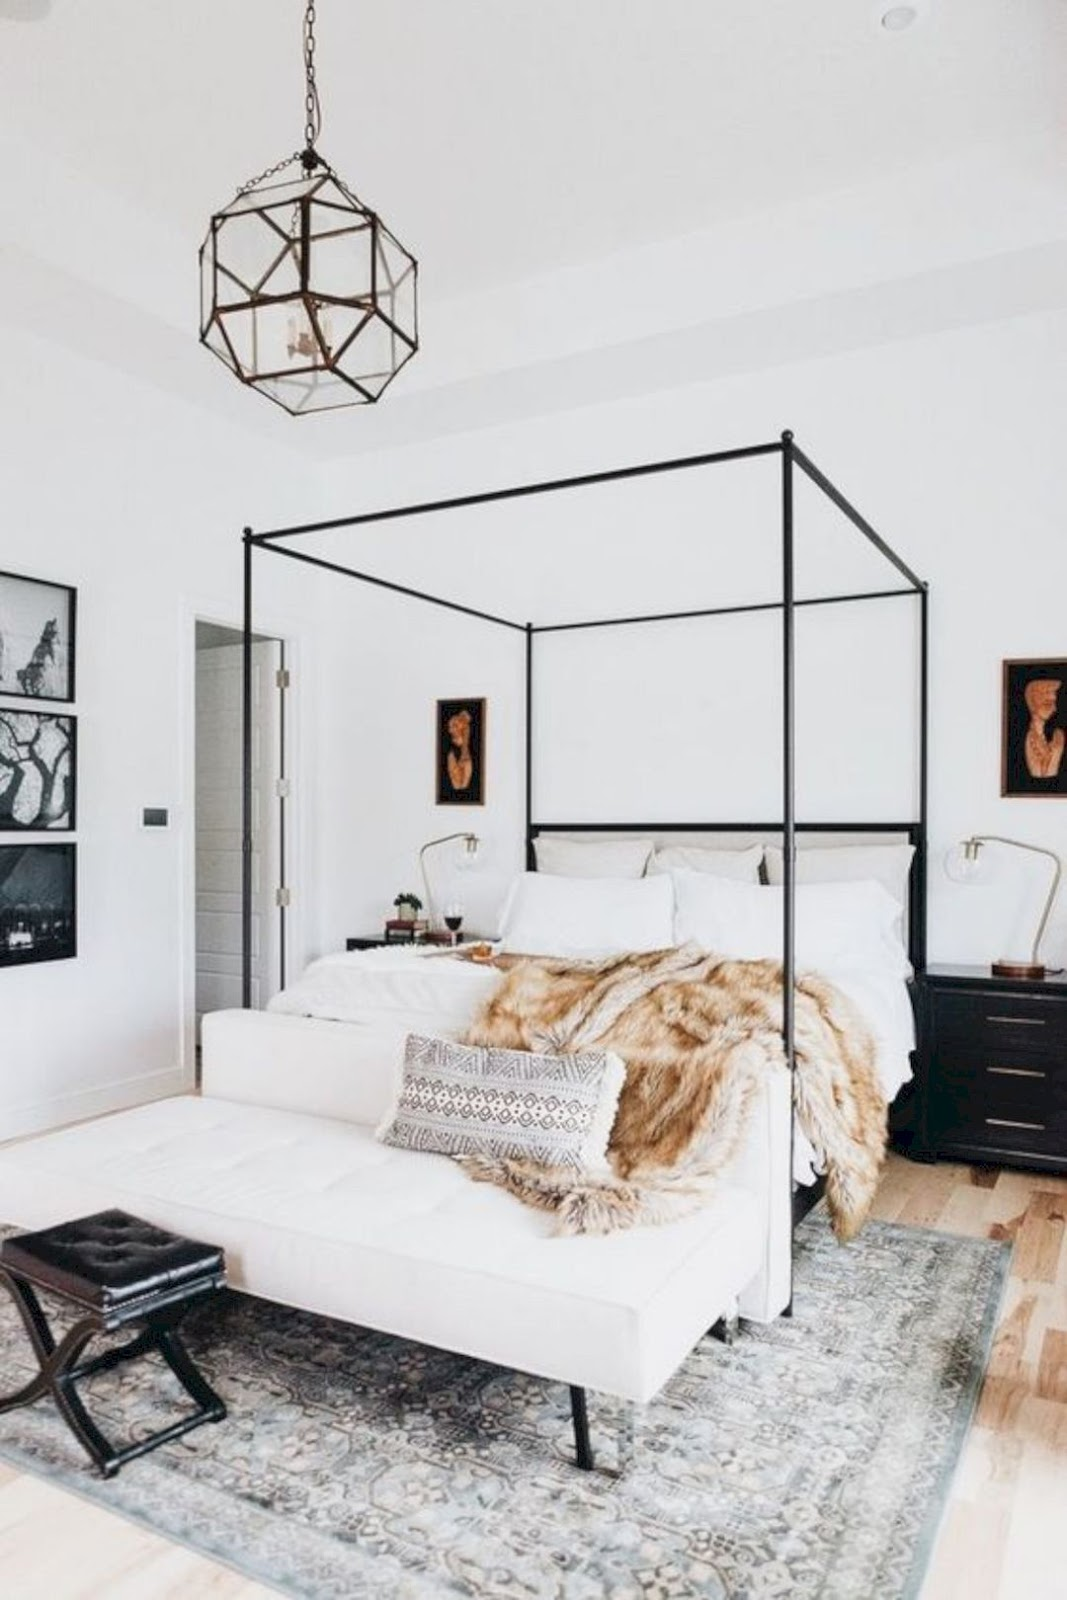 TIPS FOR CREATING A MASTER BEDROOM HE WILL LOVE